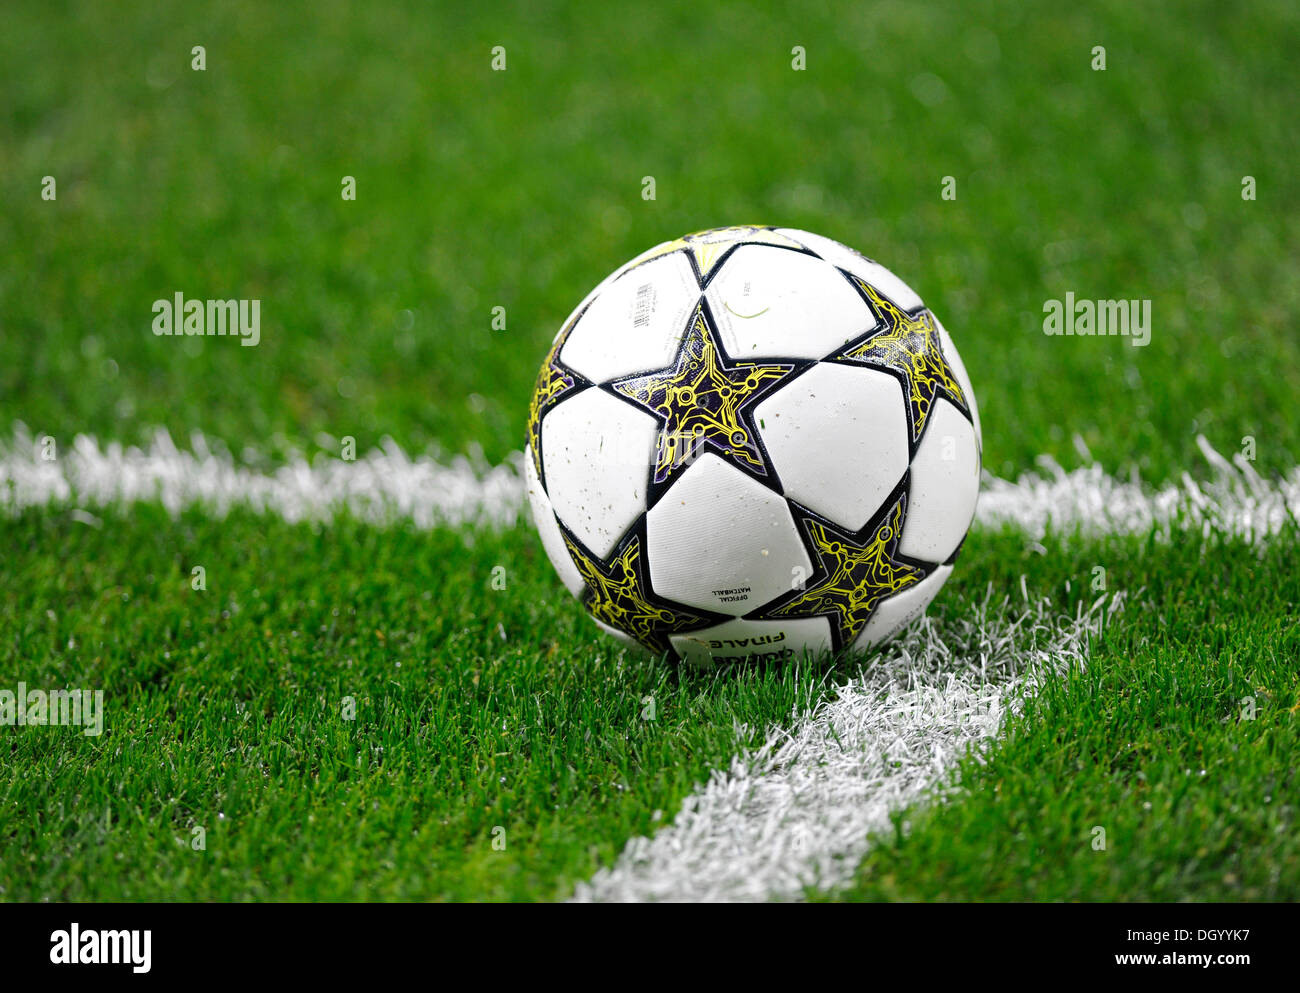 Adidas football lying on a football pitch - Stock Image